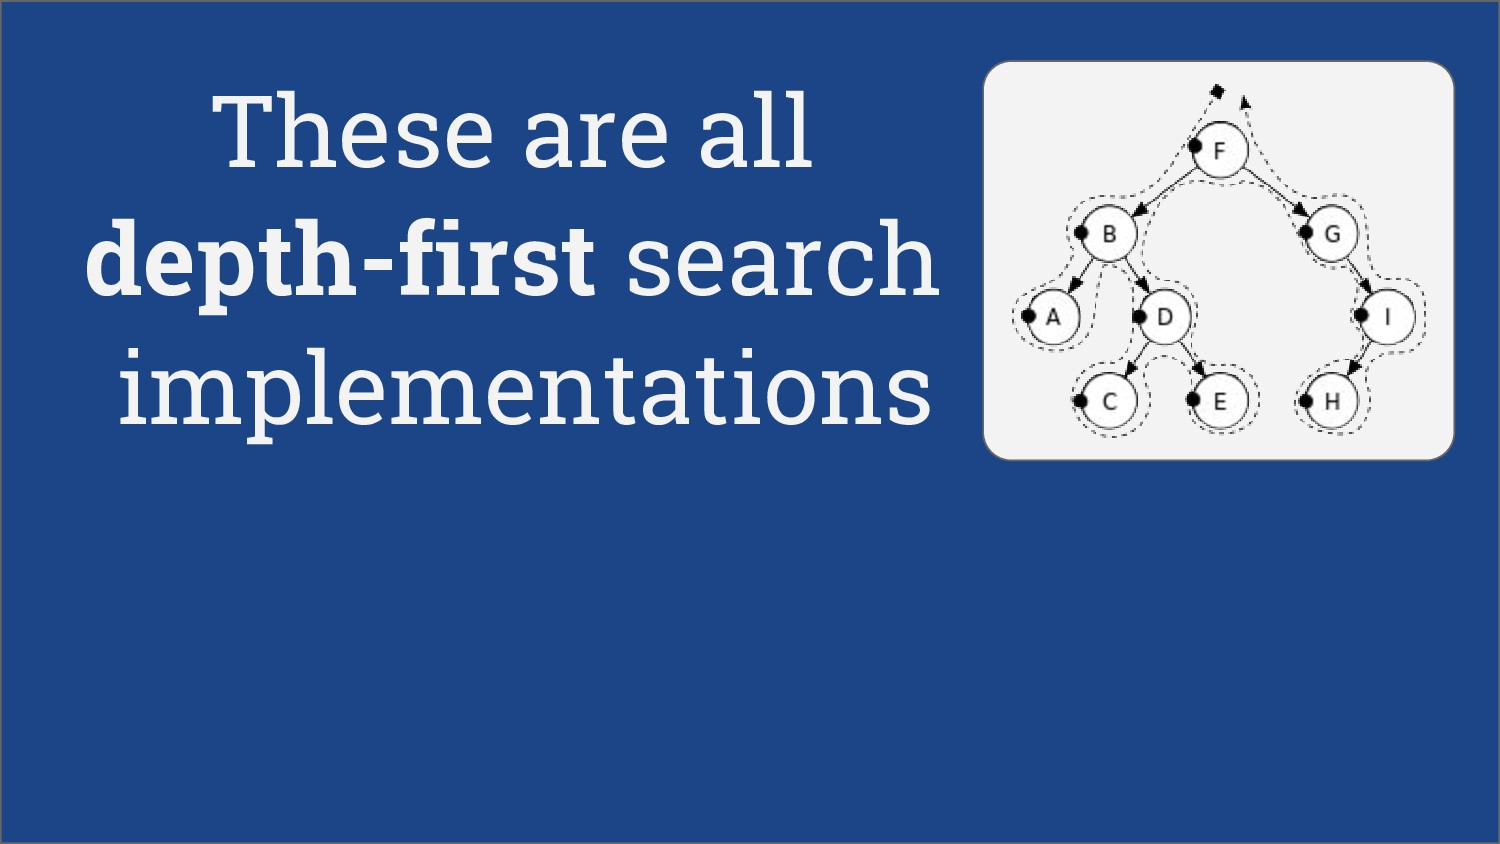 These are all depth-first search implementations